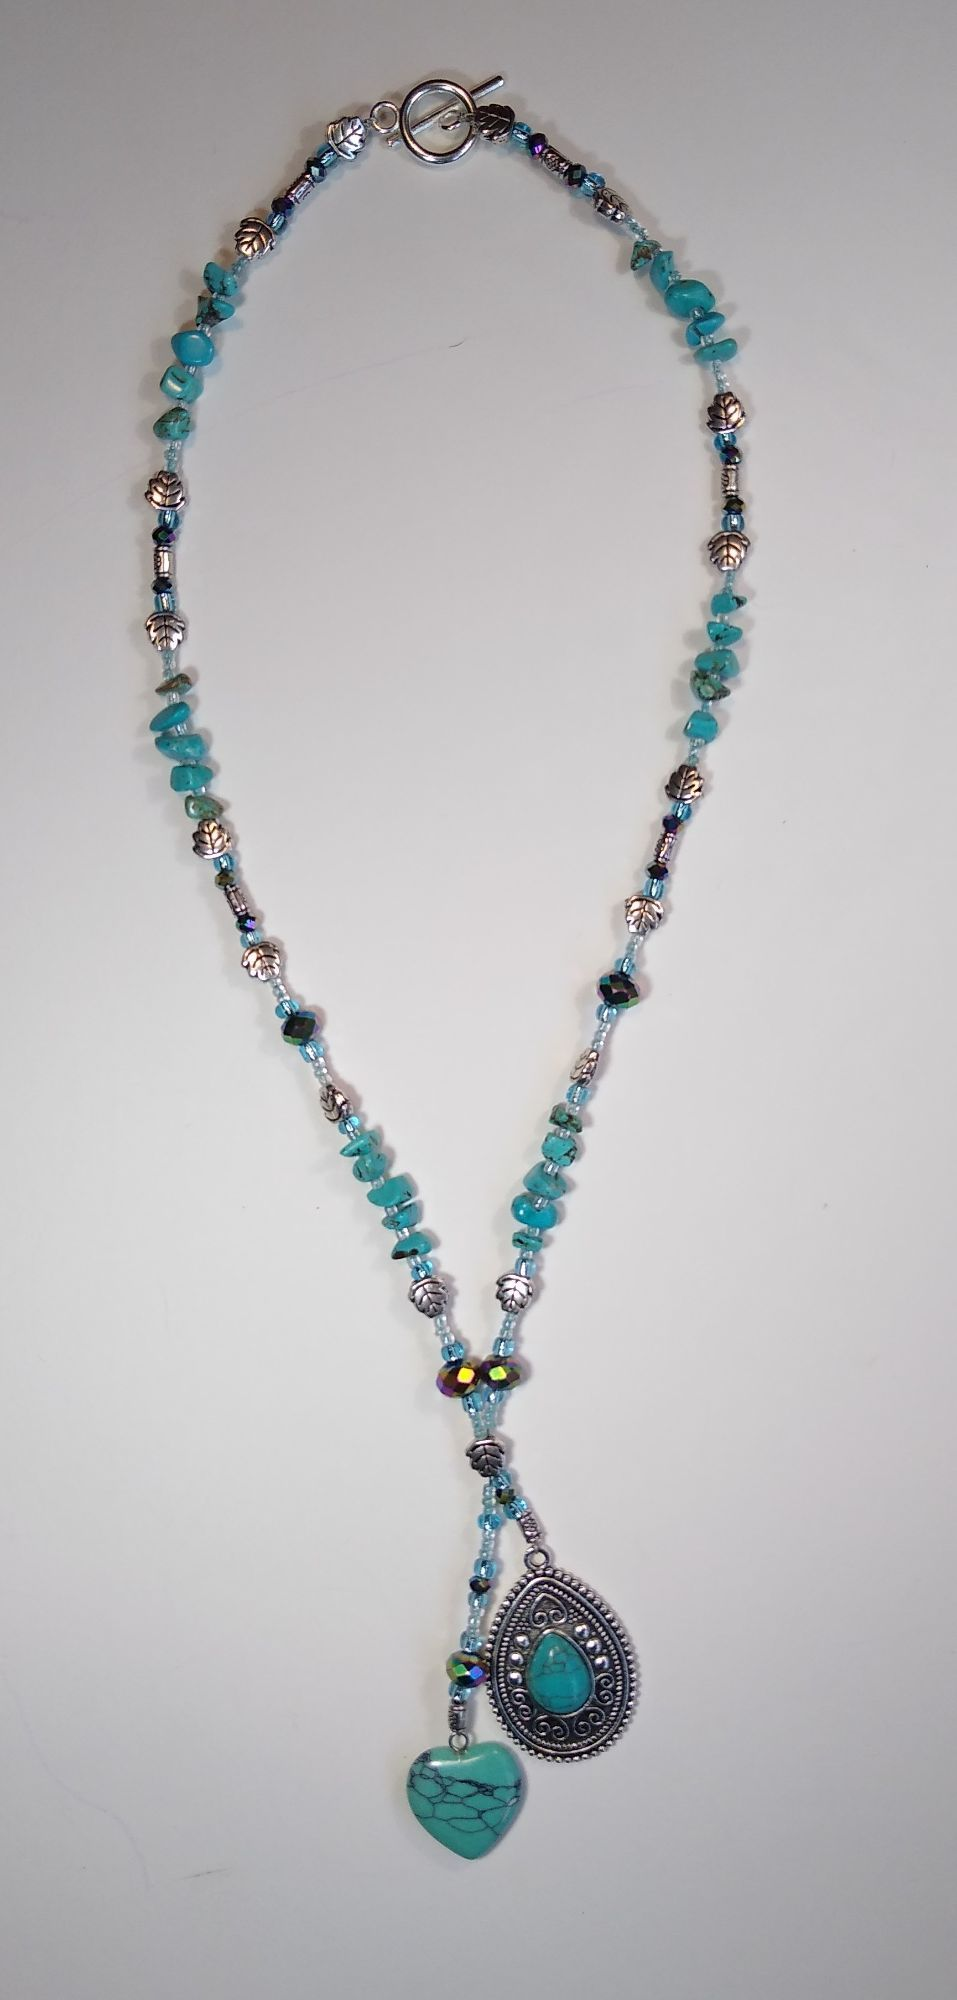 TURQUOISE HEART AND TEAR DROP CHARM NECKLACE